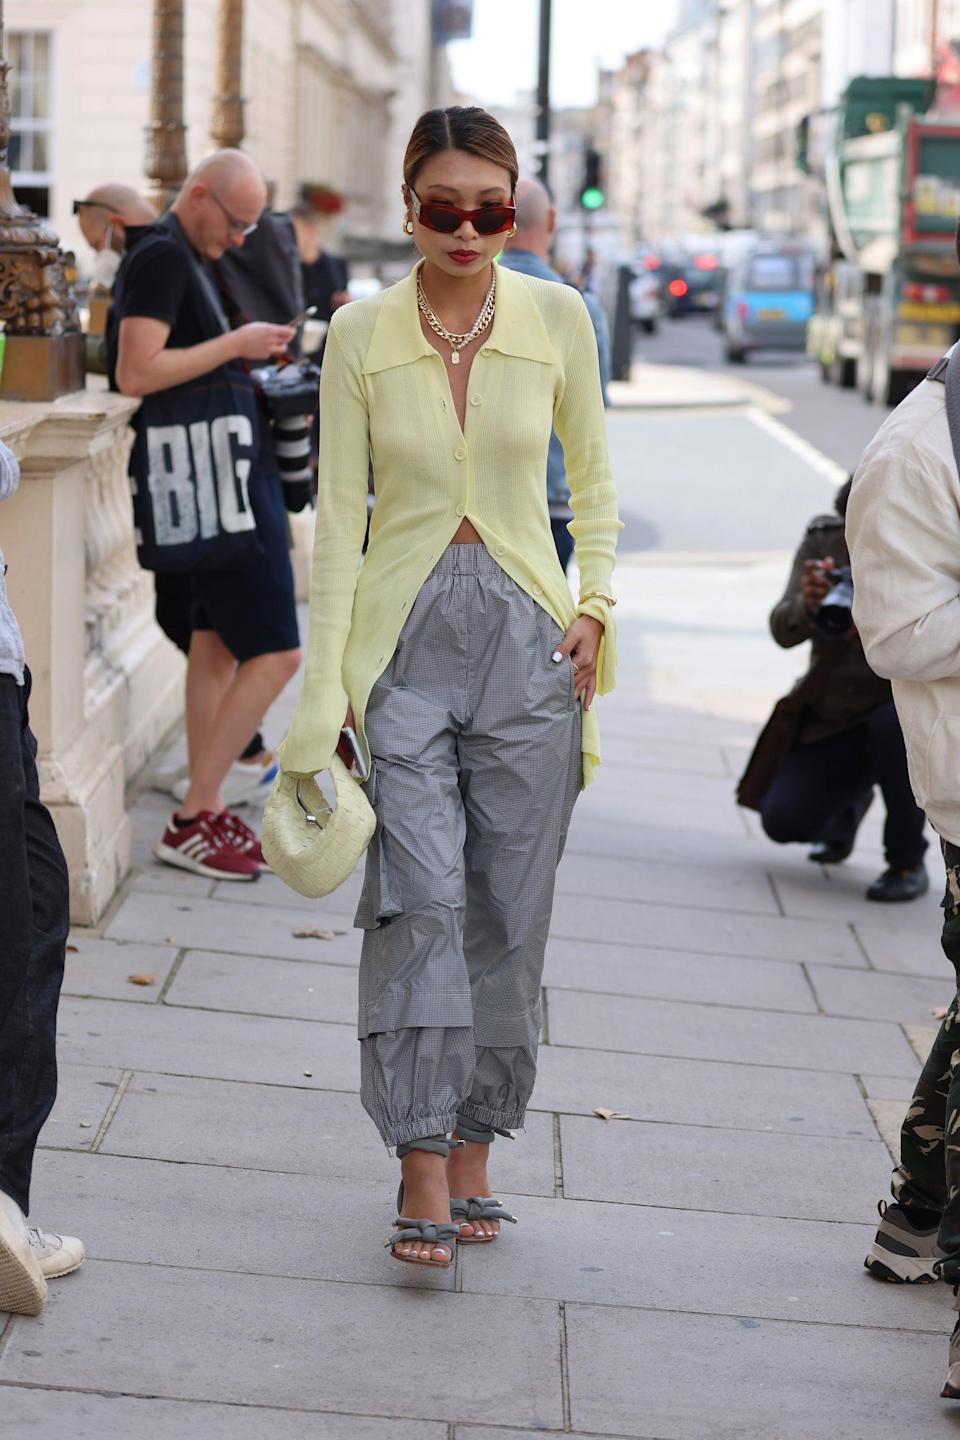 """Grey cargo pants and a lemony, light-weave knit is giving us <a href=""""https://www.refinery29.com/en-gb/autumn-transitional-office-wear-clothing"""" rel=""""nofollow noopener"""" target=""""_blank"""" data-ylk=""""slk:back-to-work wardrobe"""" class=""""link rapid-noclick-resp"""">back-to-work wardrobe</a> inspo.<span class=""""copyright"""">Photo Courtesy of Neil Mockford/Getty Images.</span>"""